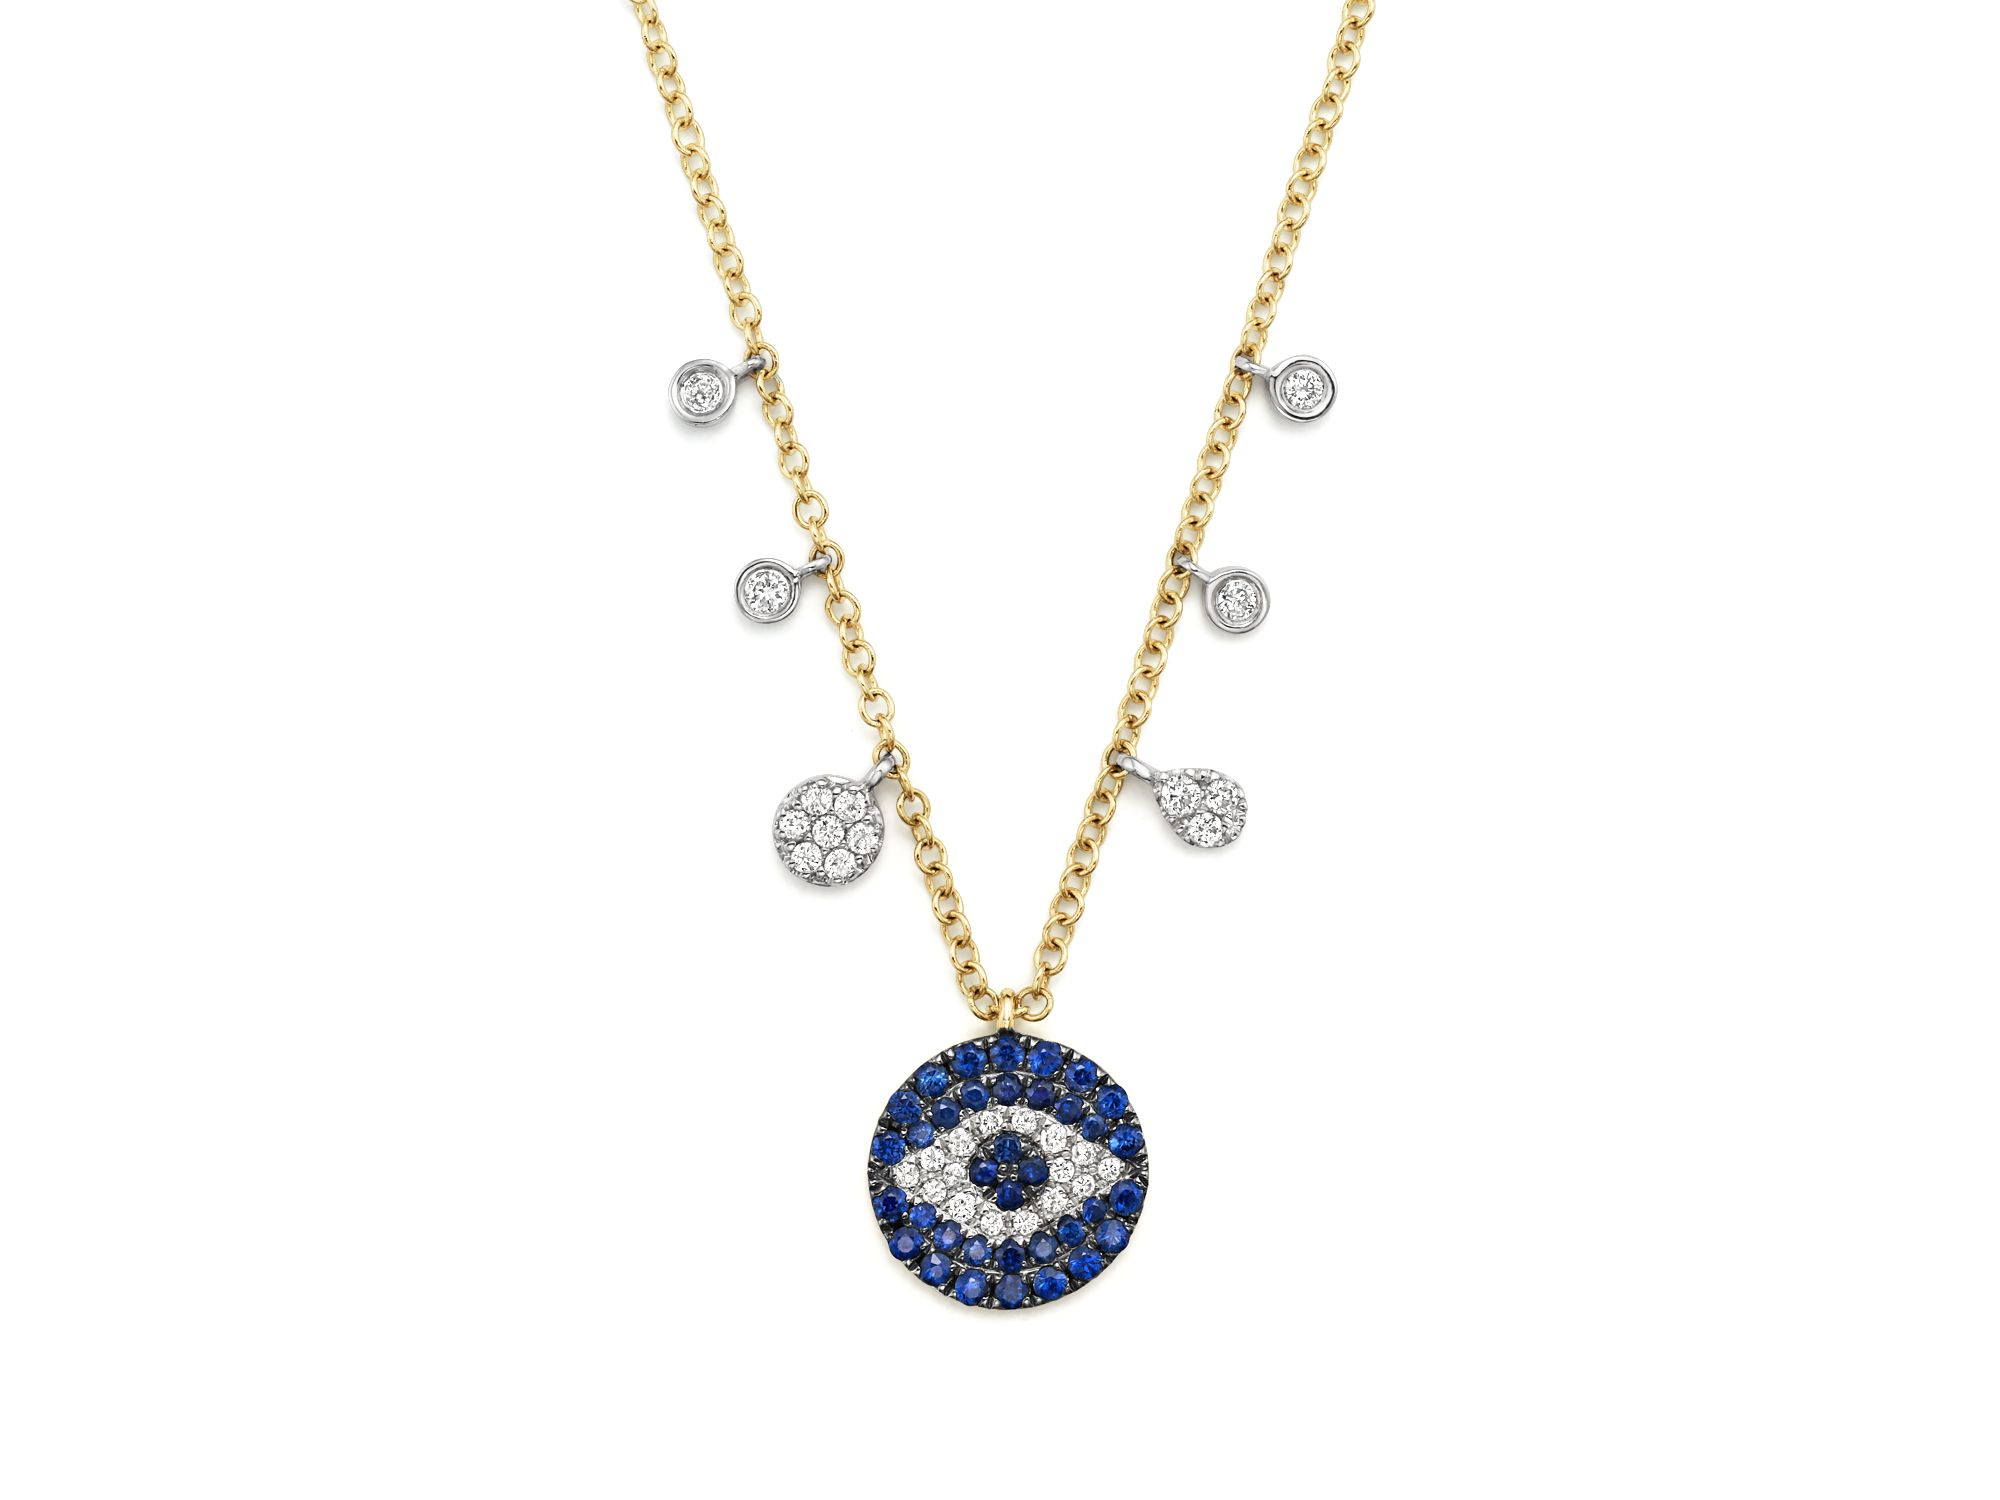 Meira T Sapphire And Diamond Evil Eye Necklace In 14k